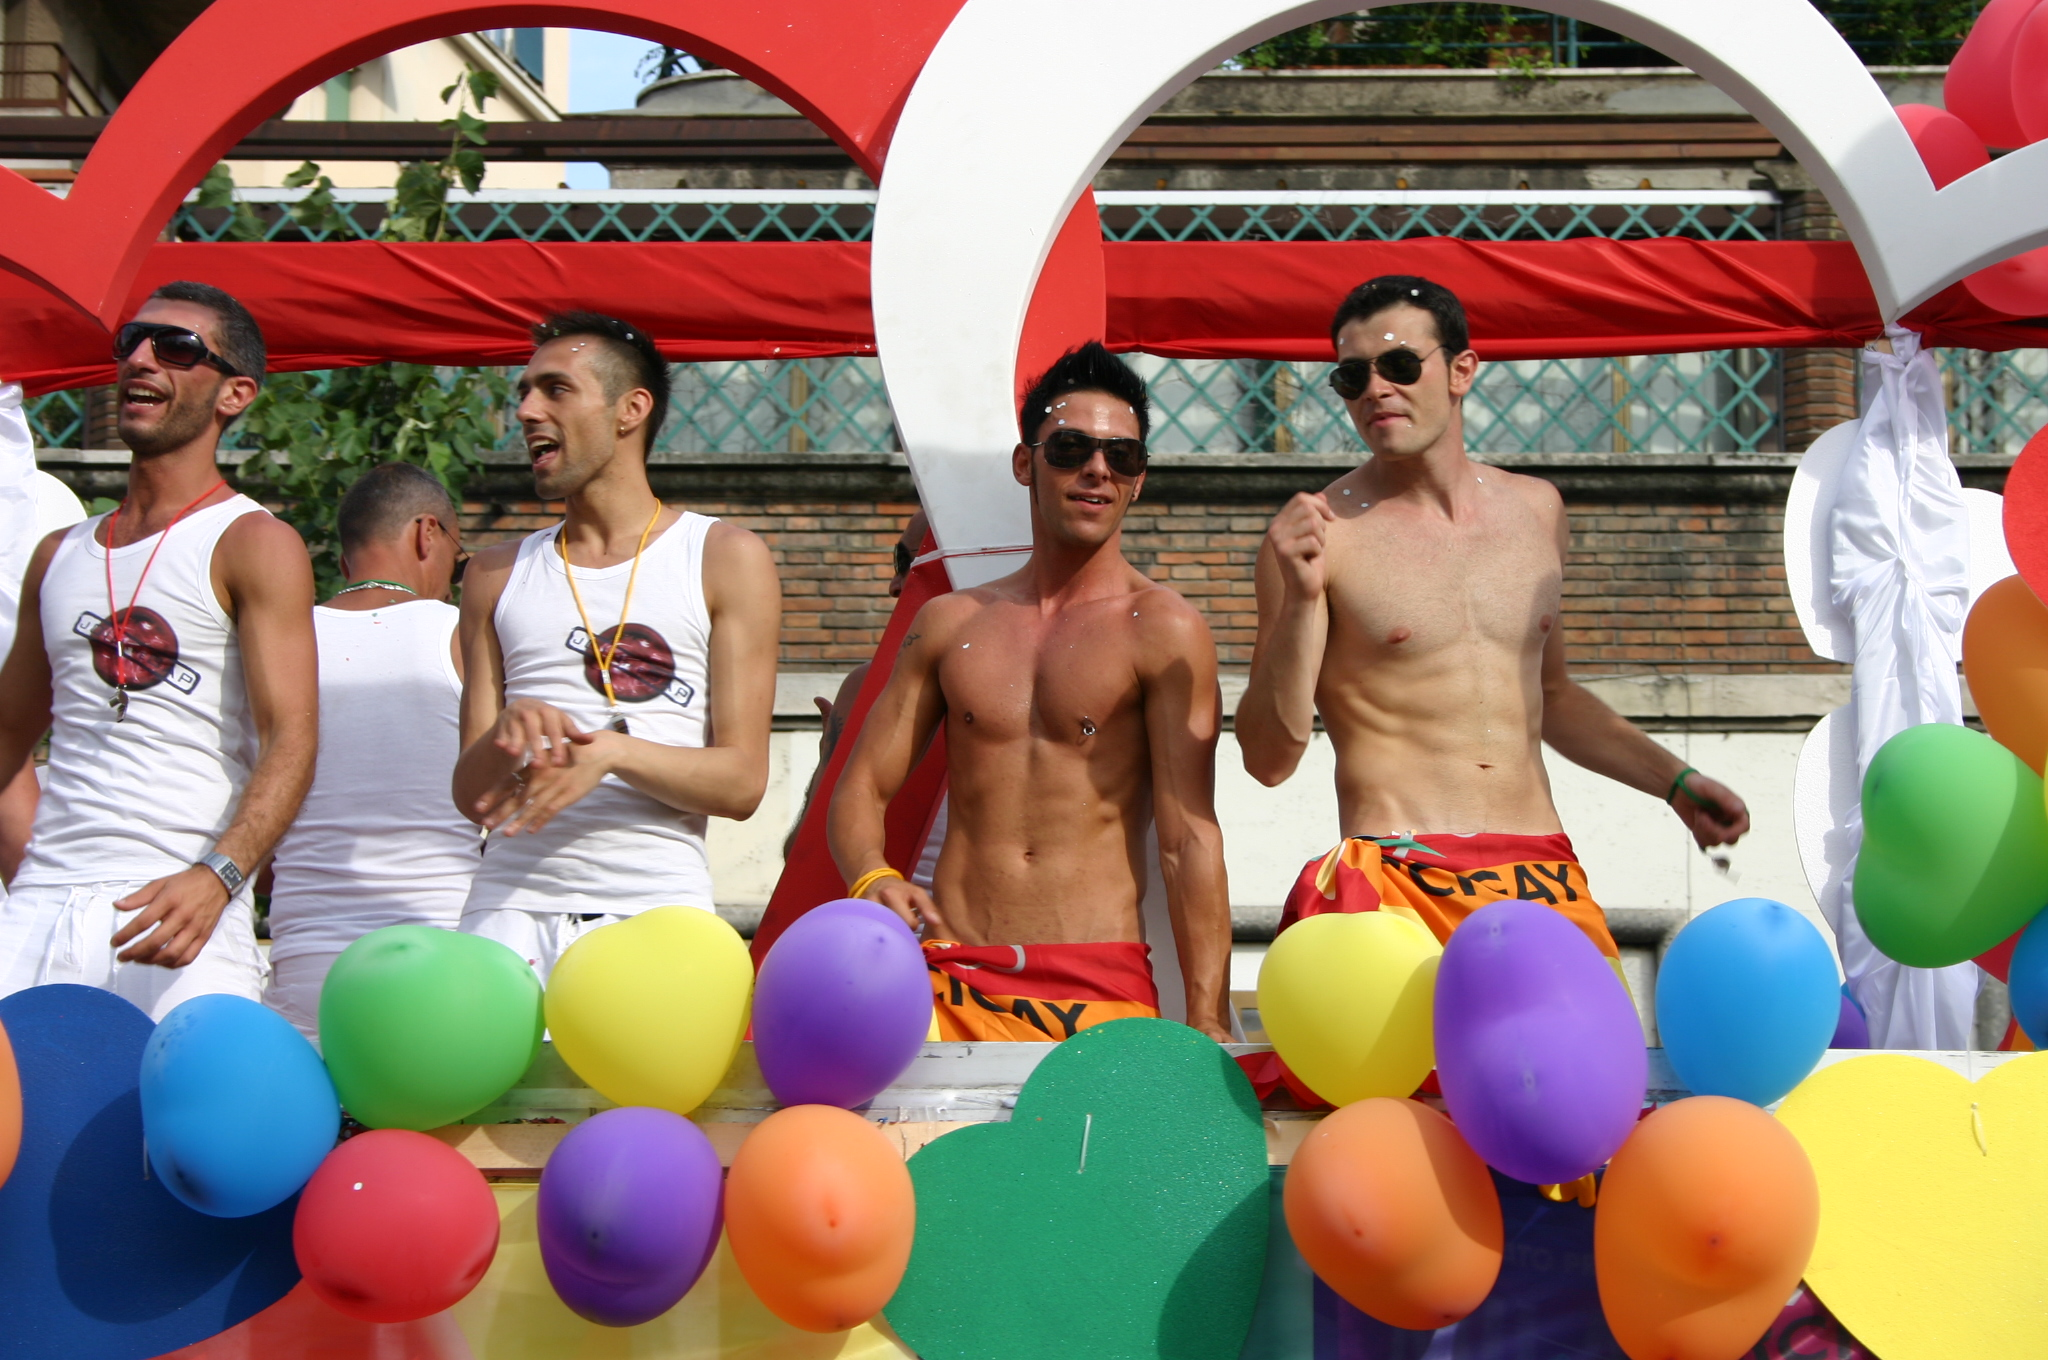 Circuit Festival: The biggest international gay & lesbian event